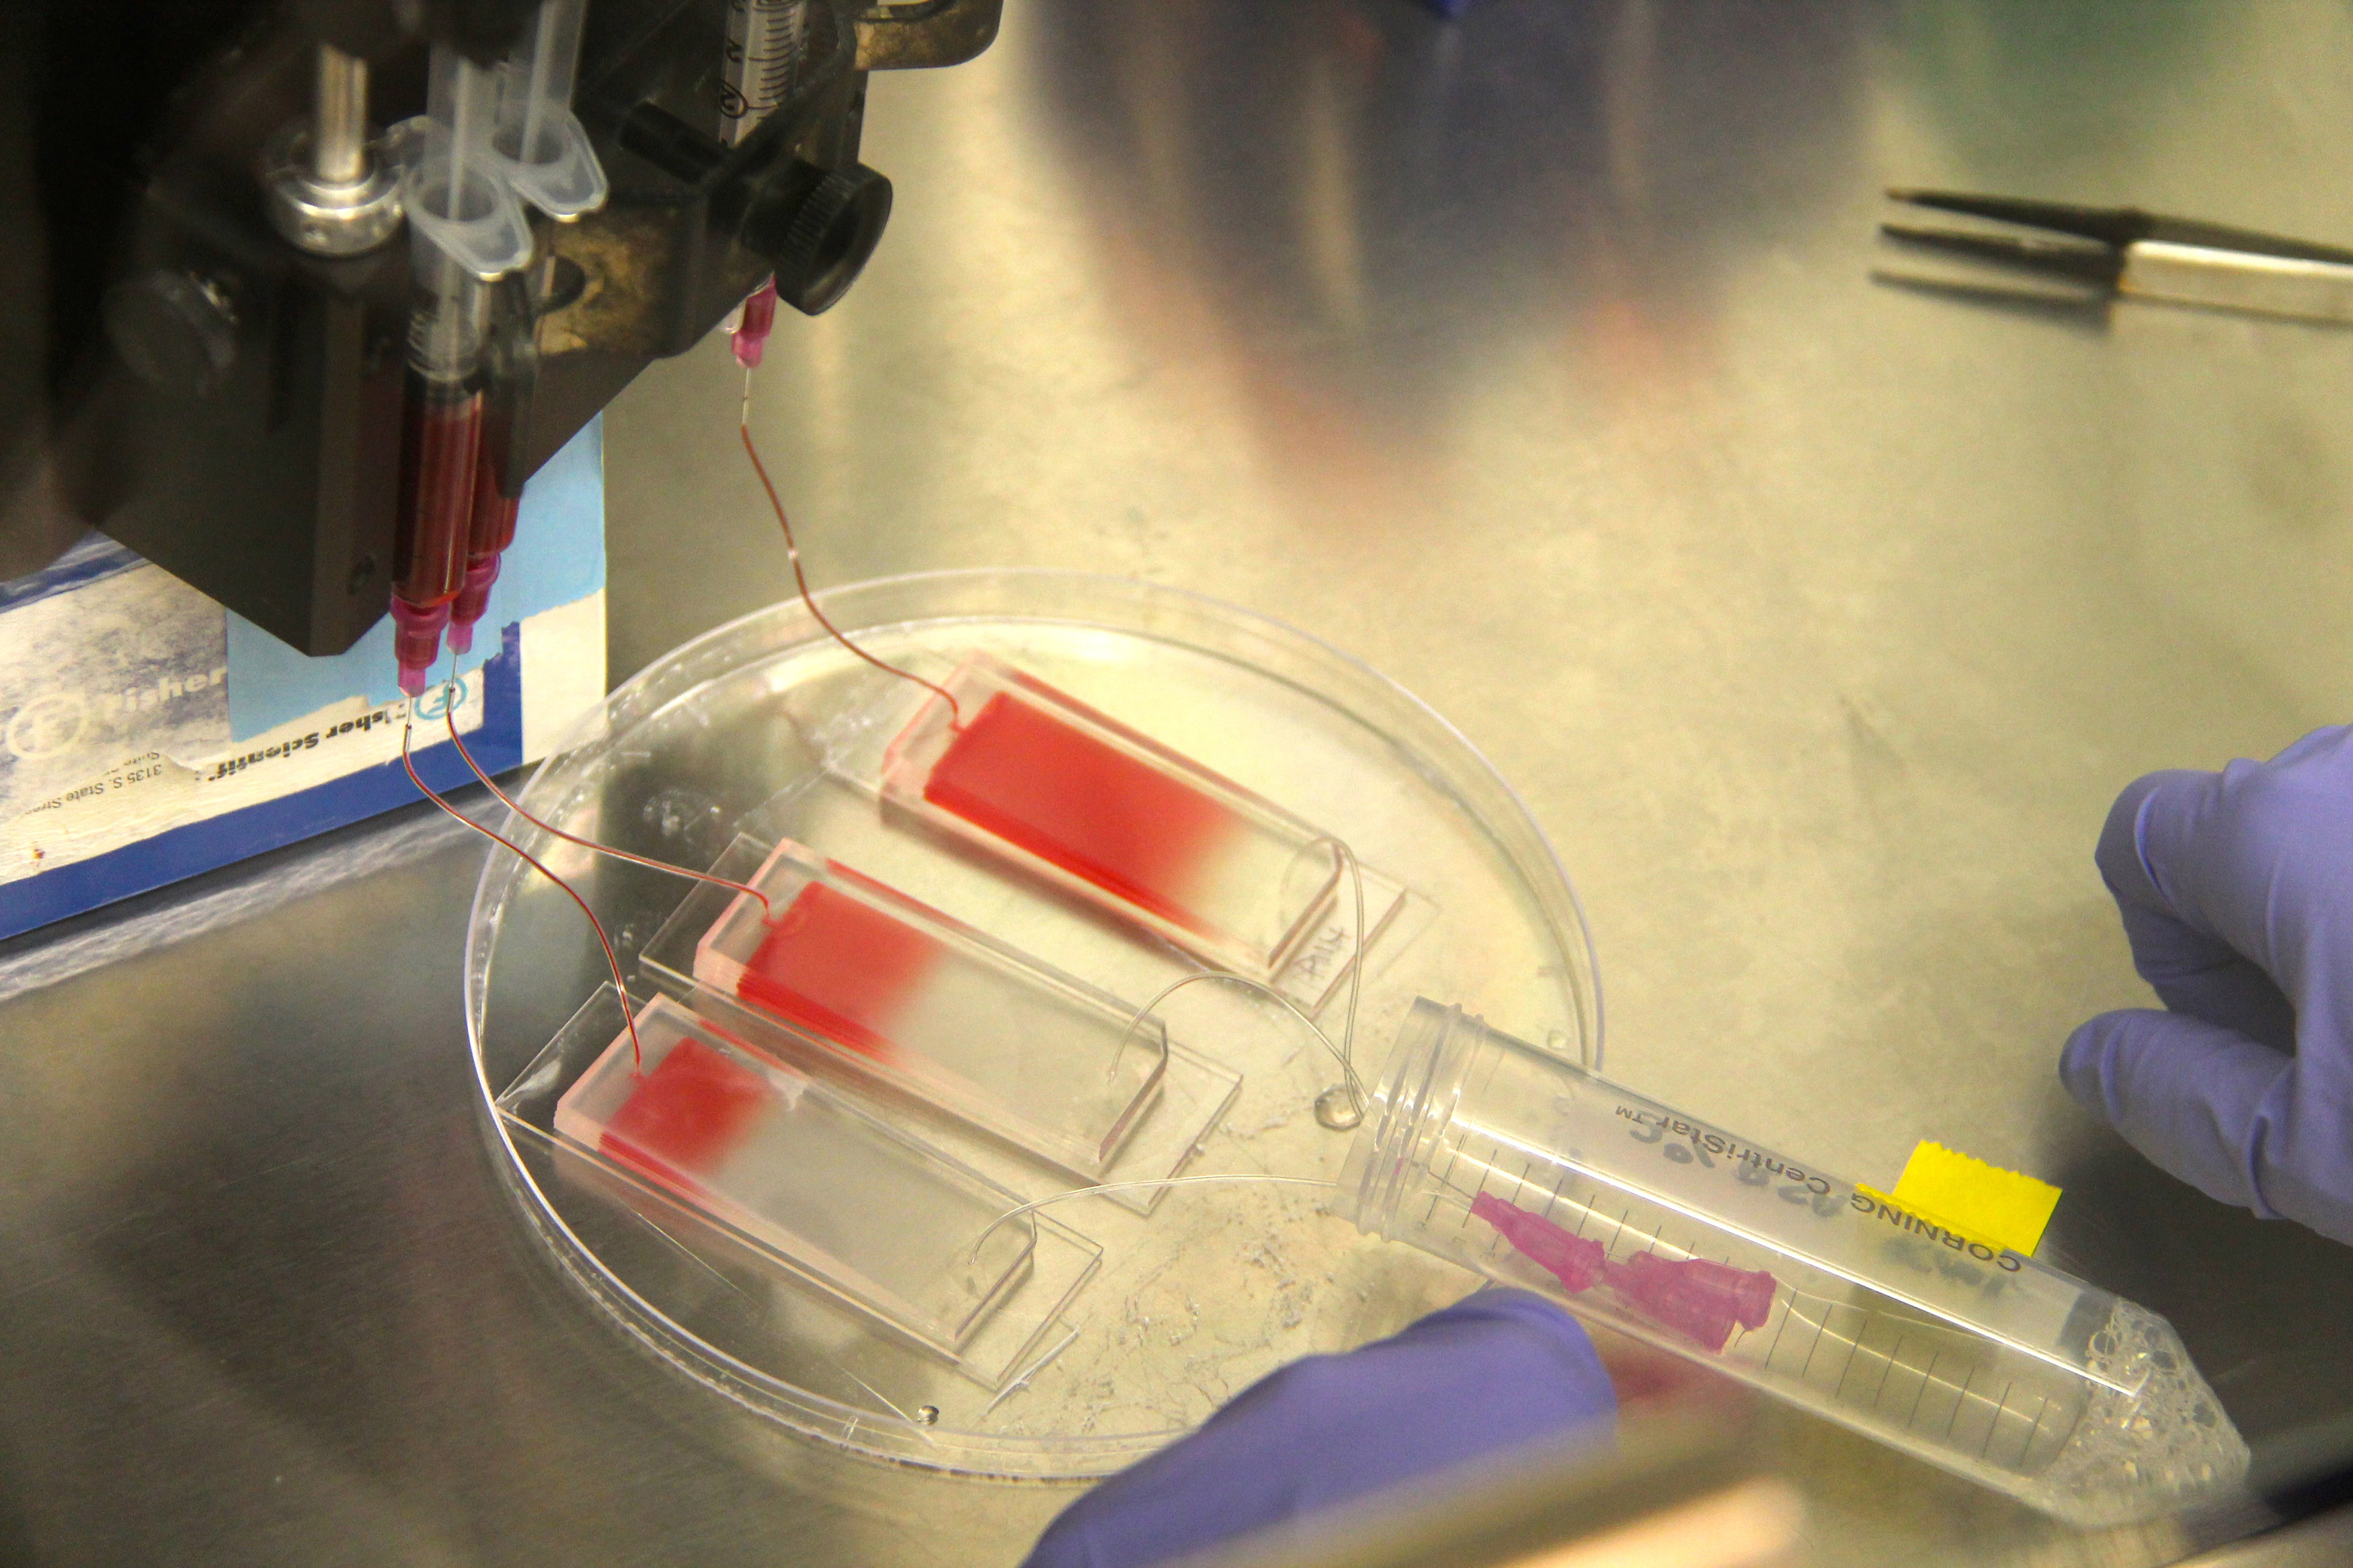 A blood sample is pumped into a microfluidic chip as part of the microfluidic co-culture process. Image credit: Jennifer Zhuo Zhang